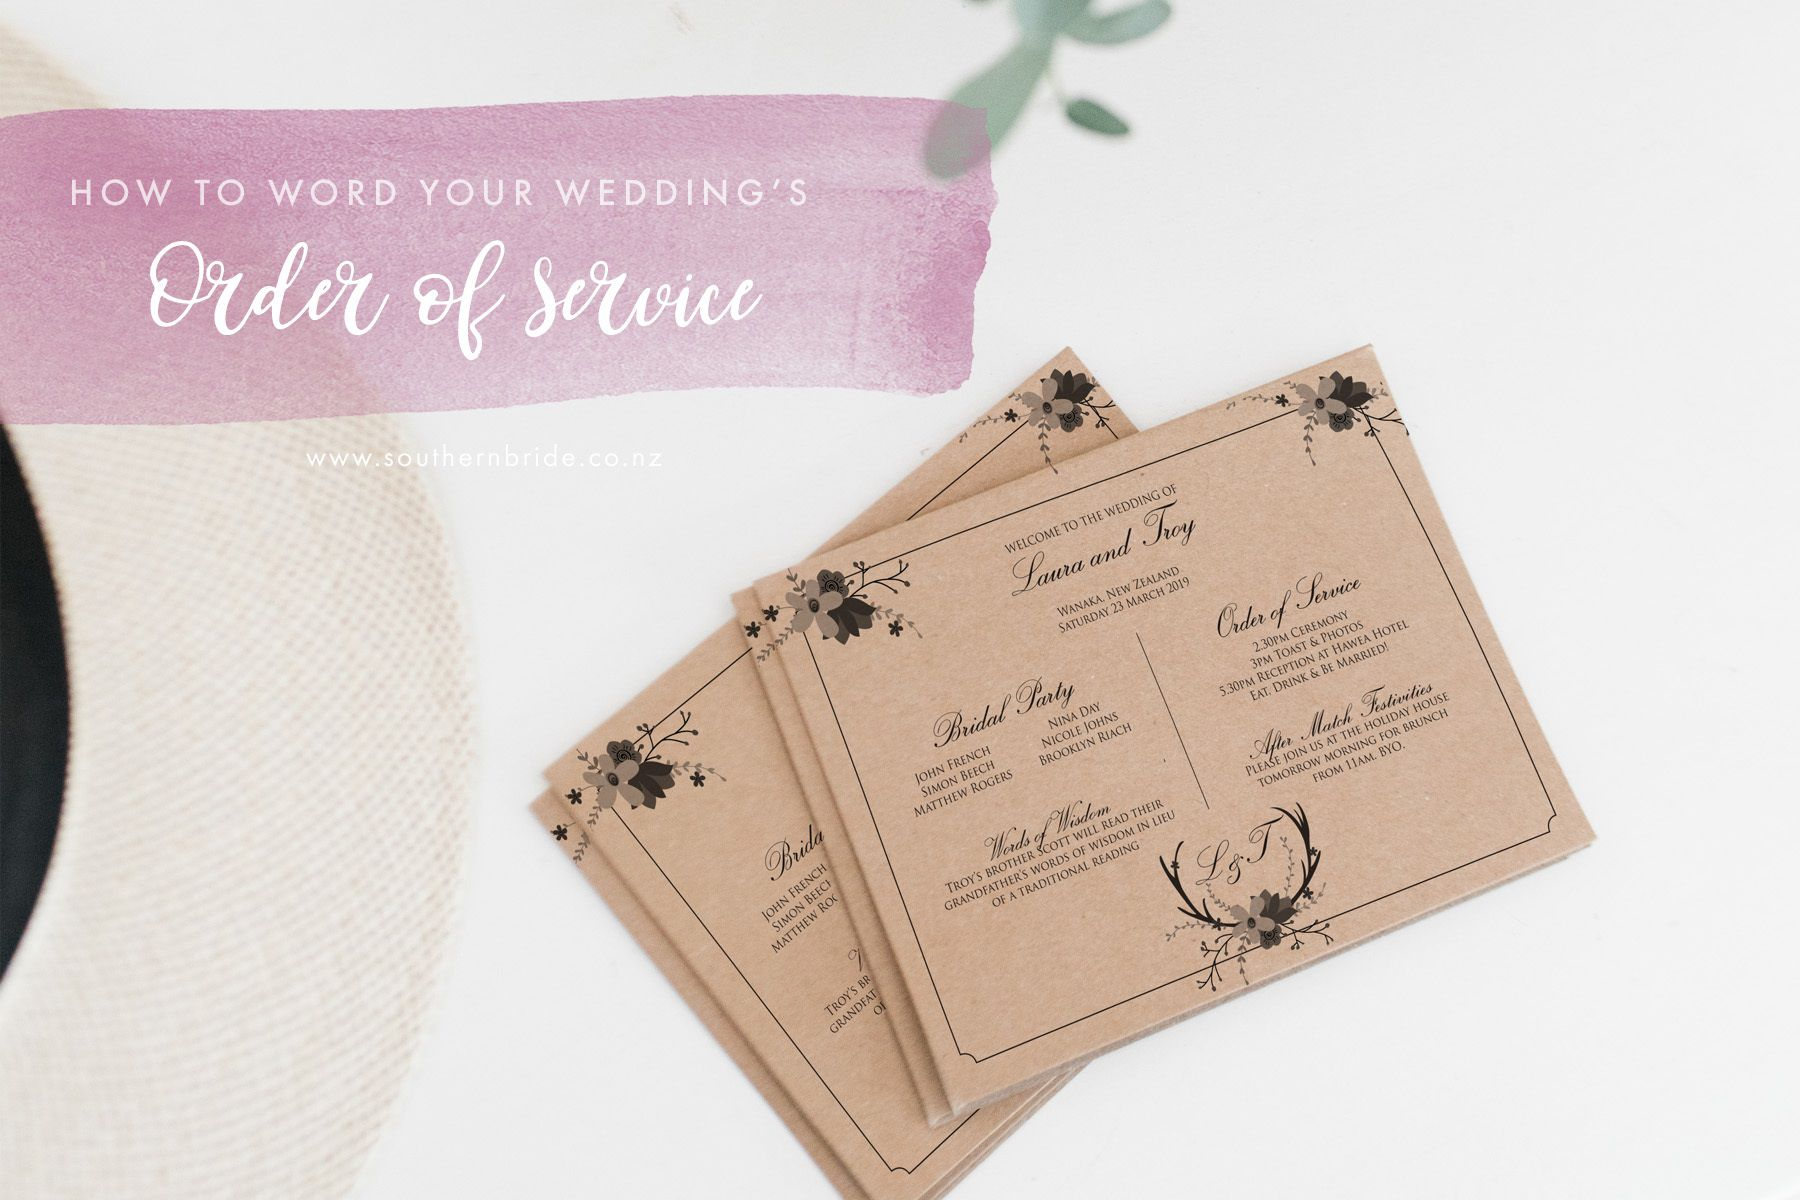 005 Dreaded Traditional Wedding Order Of Service Template Uk High Resolution Full